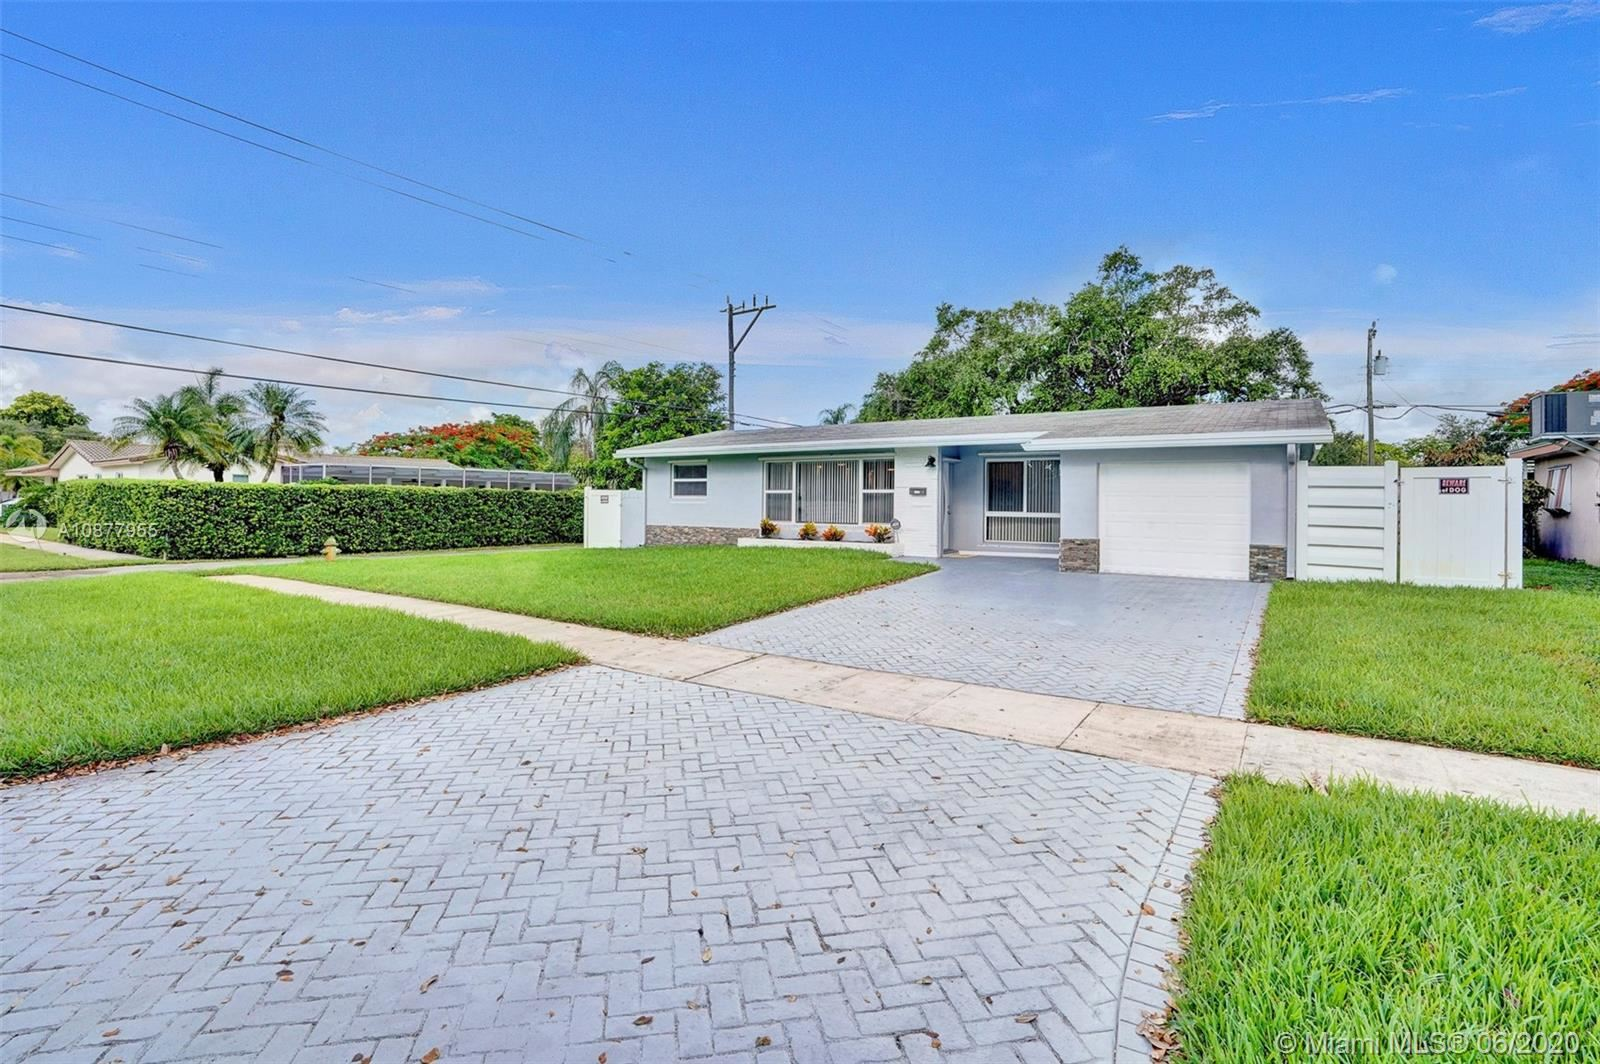 2110 N 42nd Ave, Hollywood, FL 33021 - #: A10877955